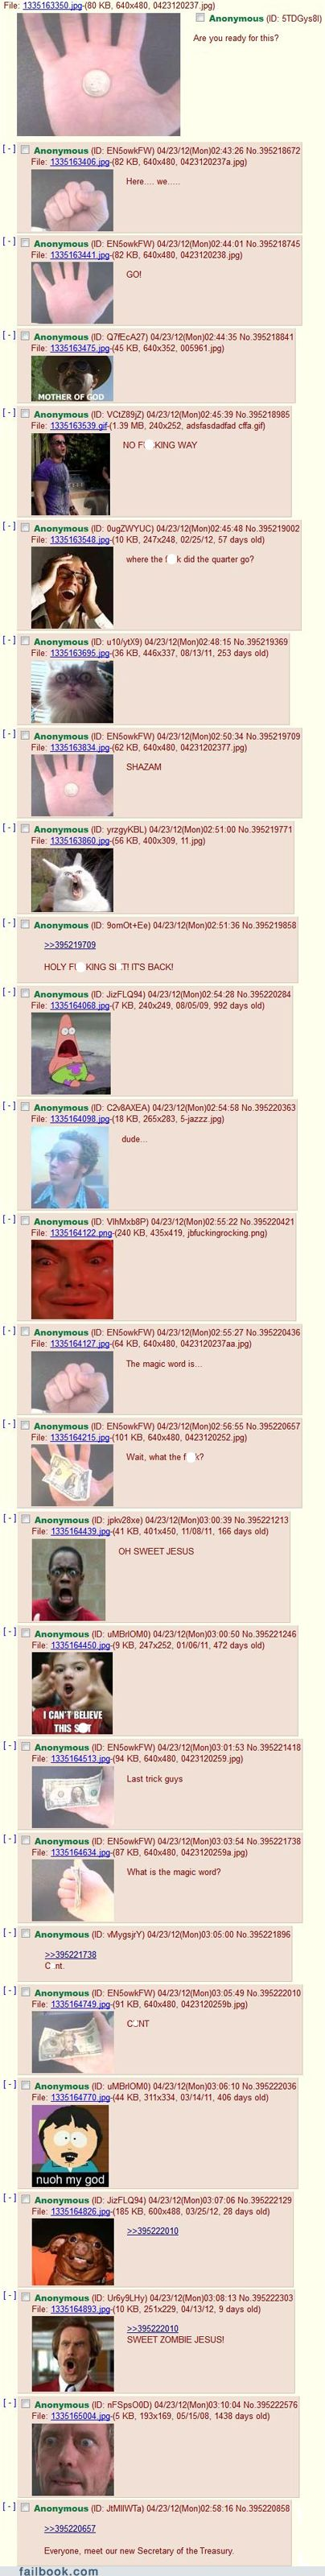 4chan Is Easily Amused